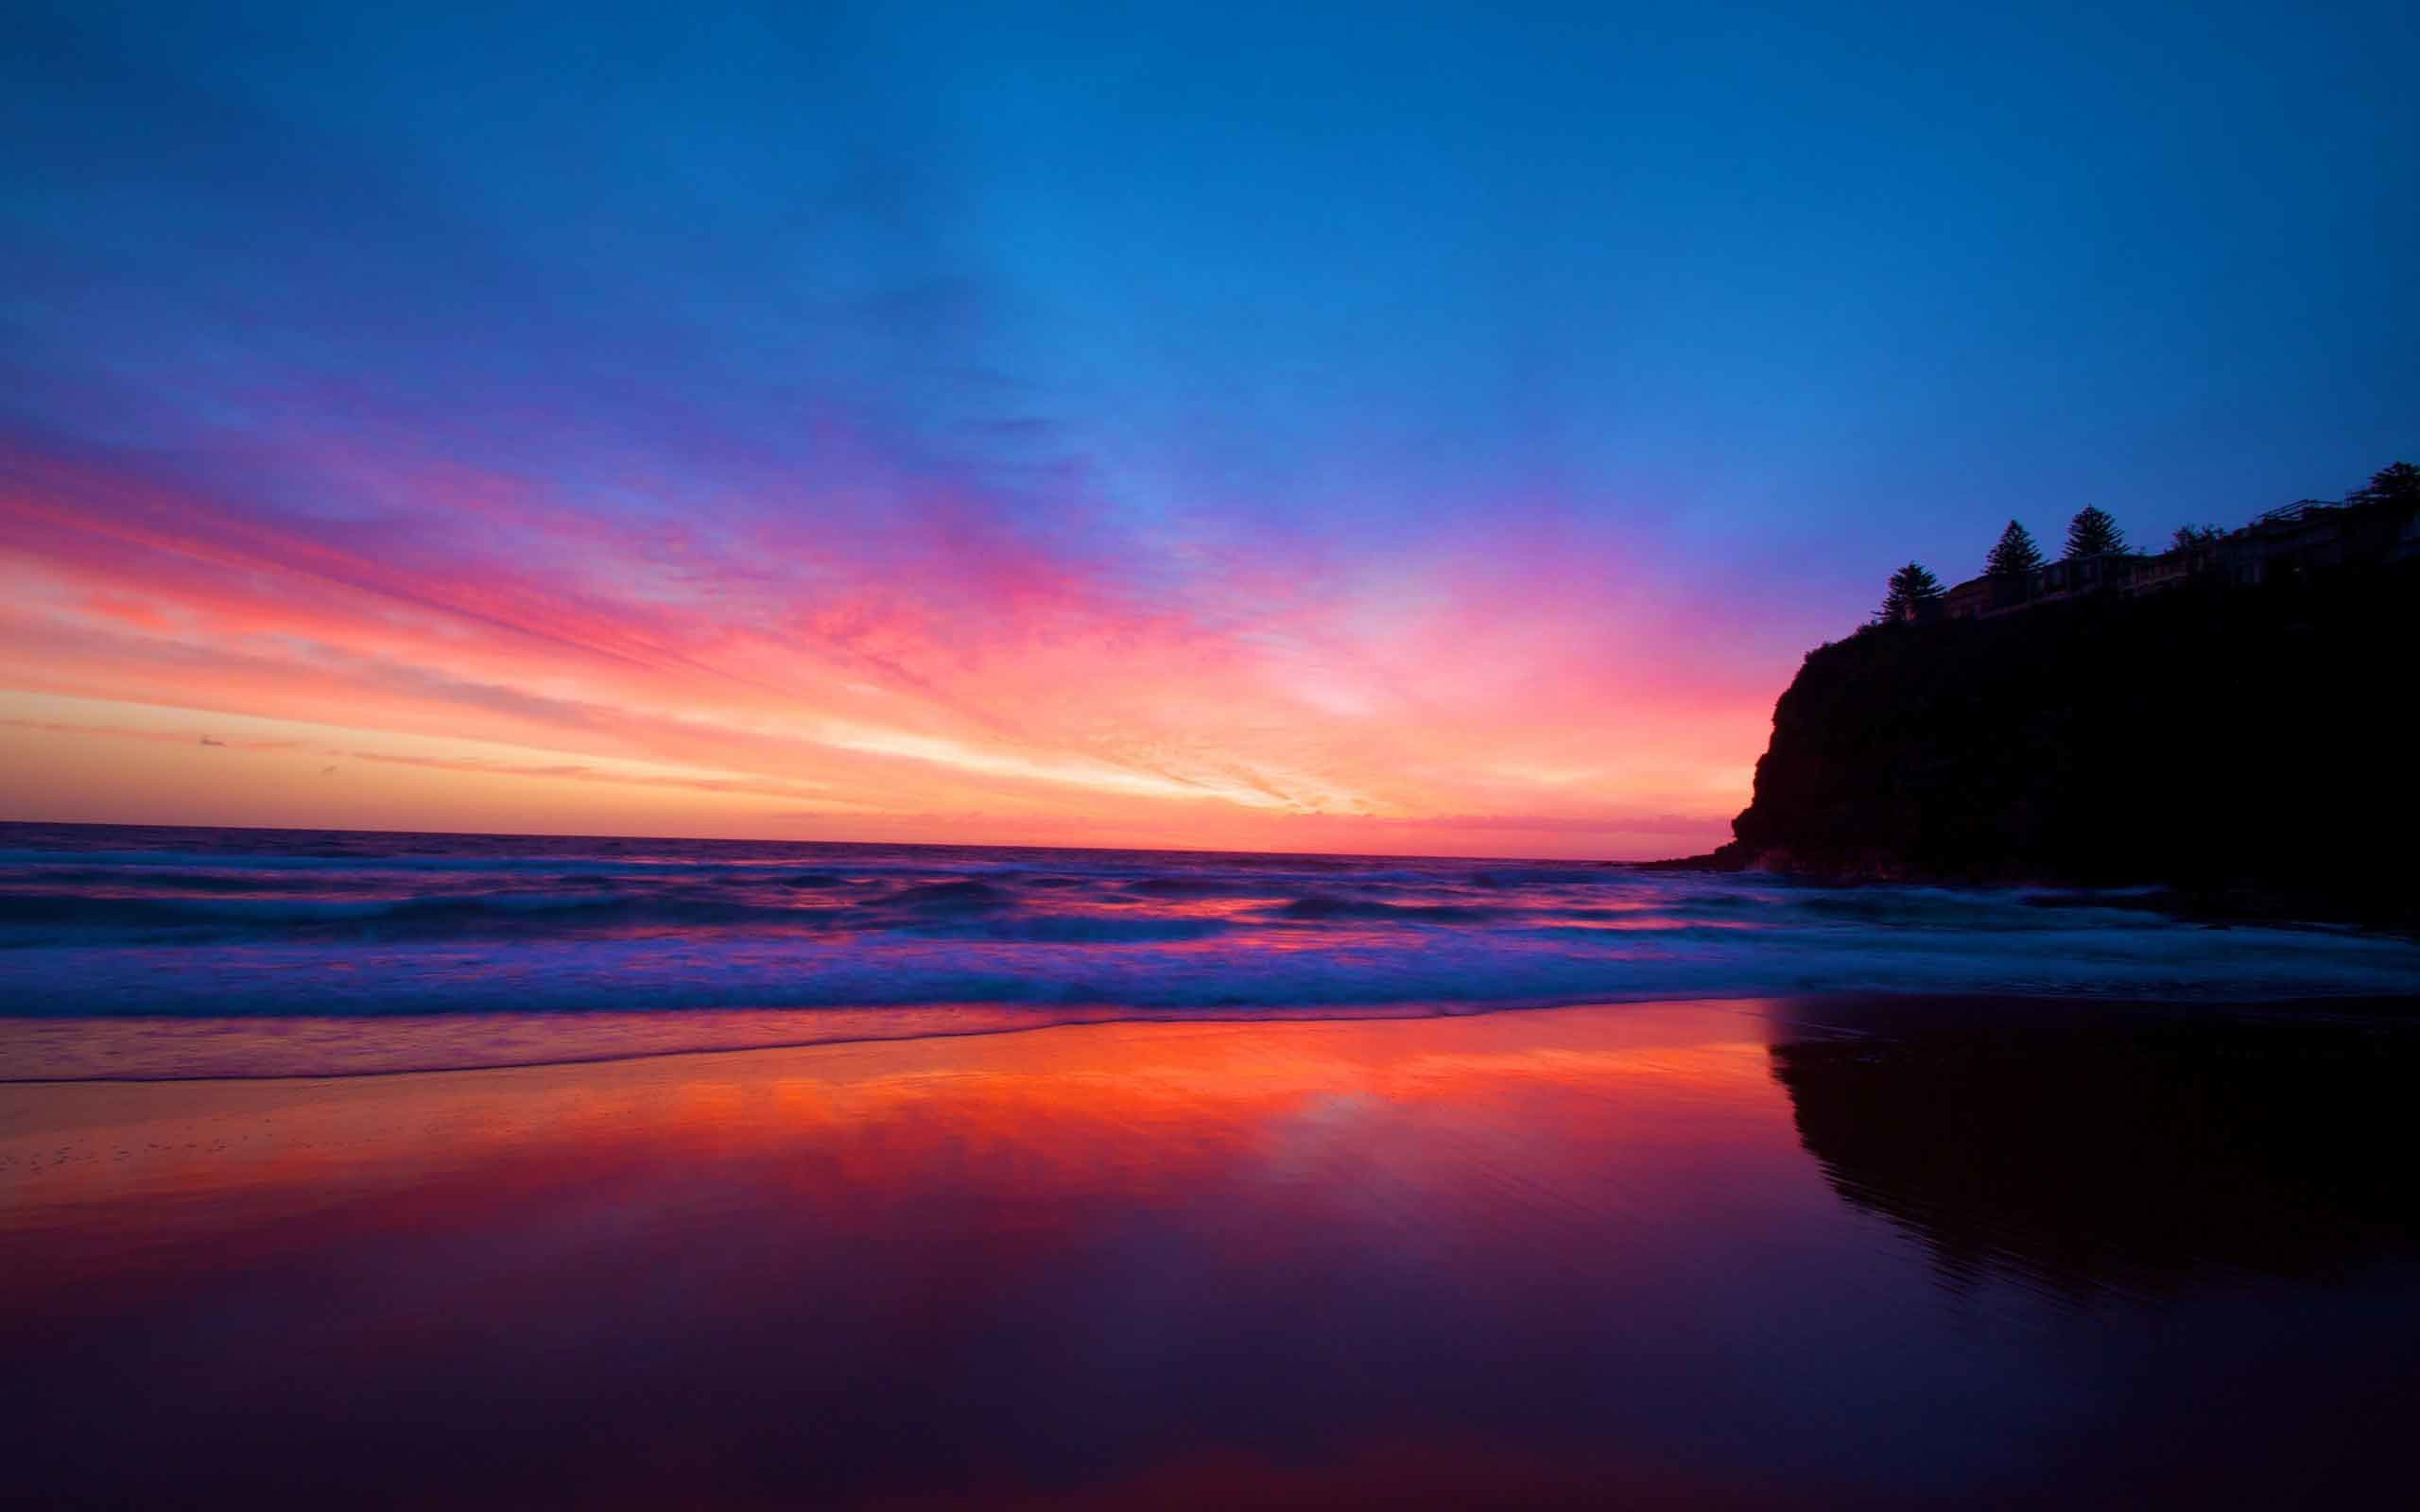 2560x1600 Sunrise Sunset Seas Dark Beach Landscapes Nature Desktop Backgrounds  Download